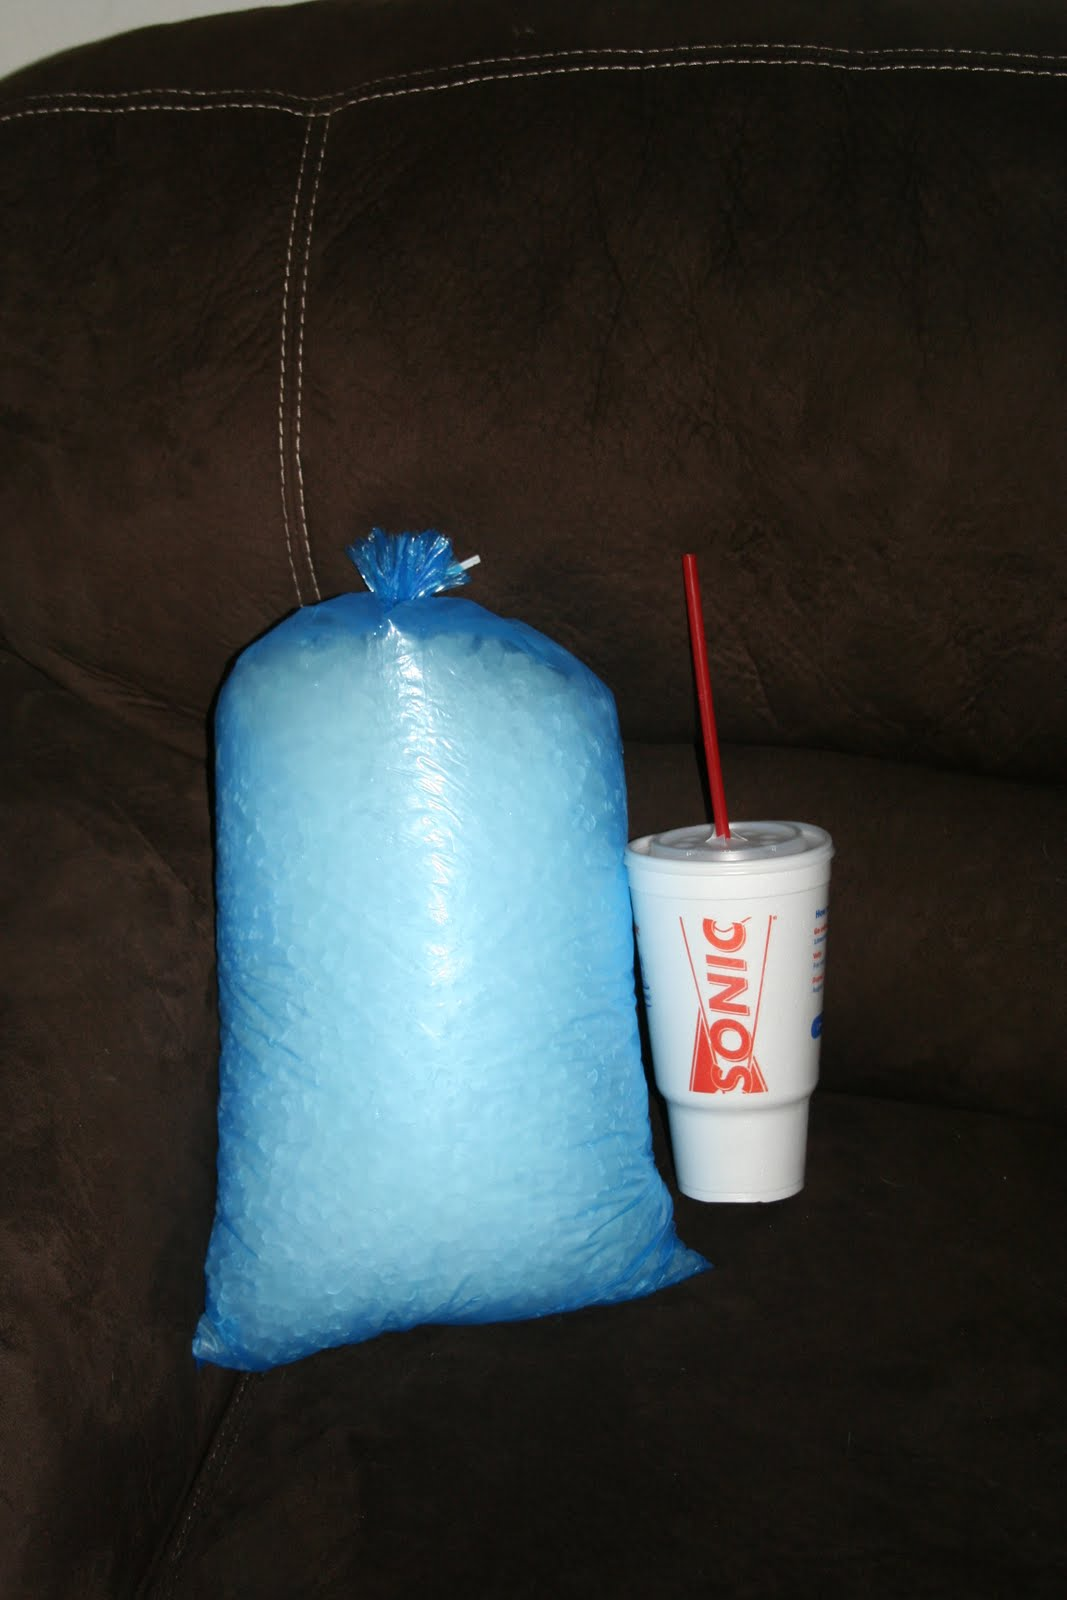 sonic bag of ice